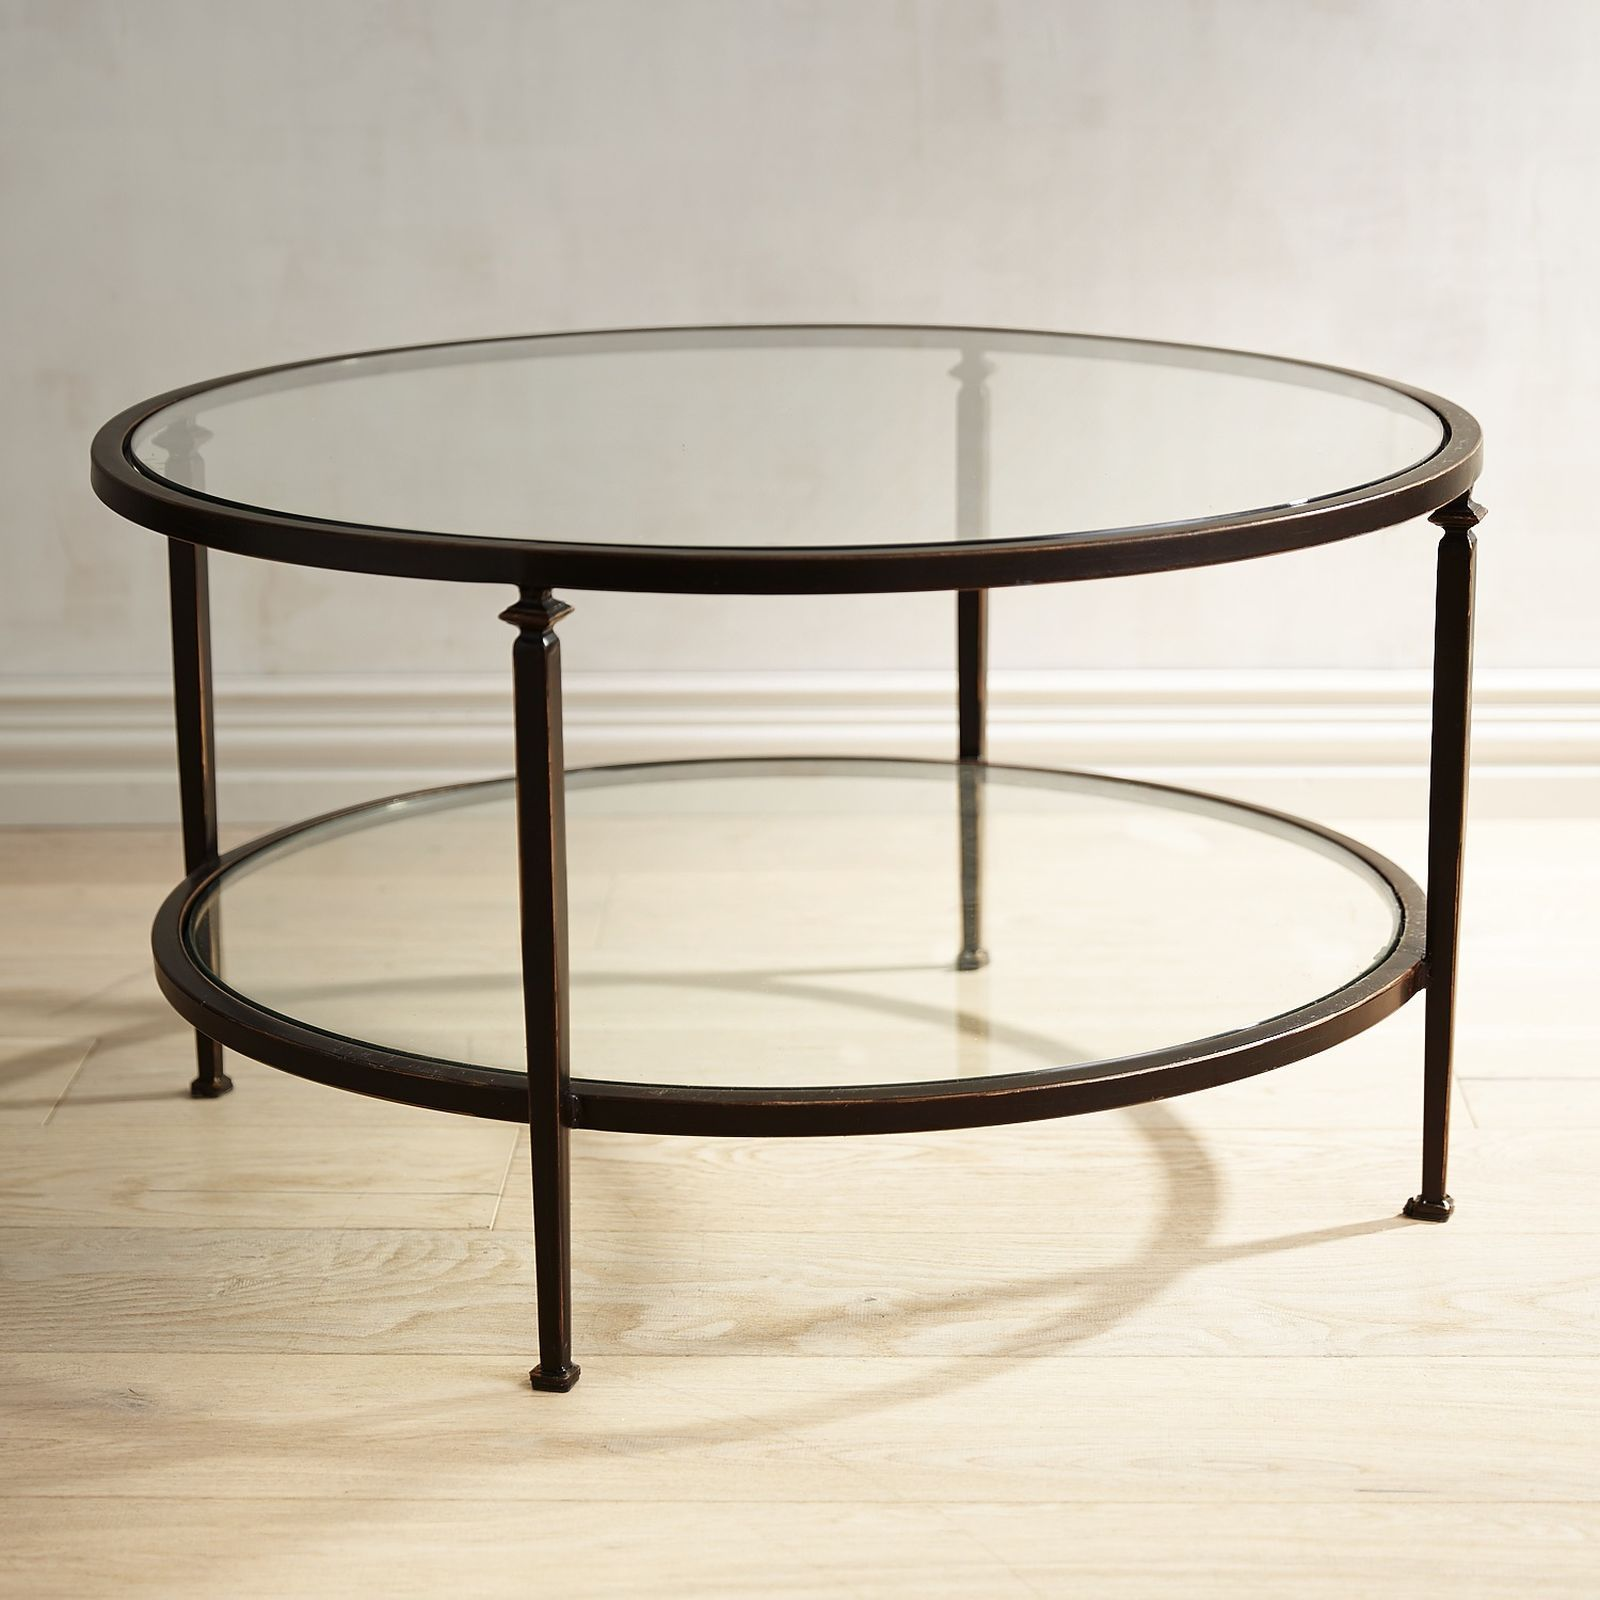 lincoln tempered glass top round coffee table inspiration office end tables and our has slender bronze wrought iron frame clear adding visual space your room weathered oak stain